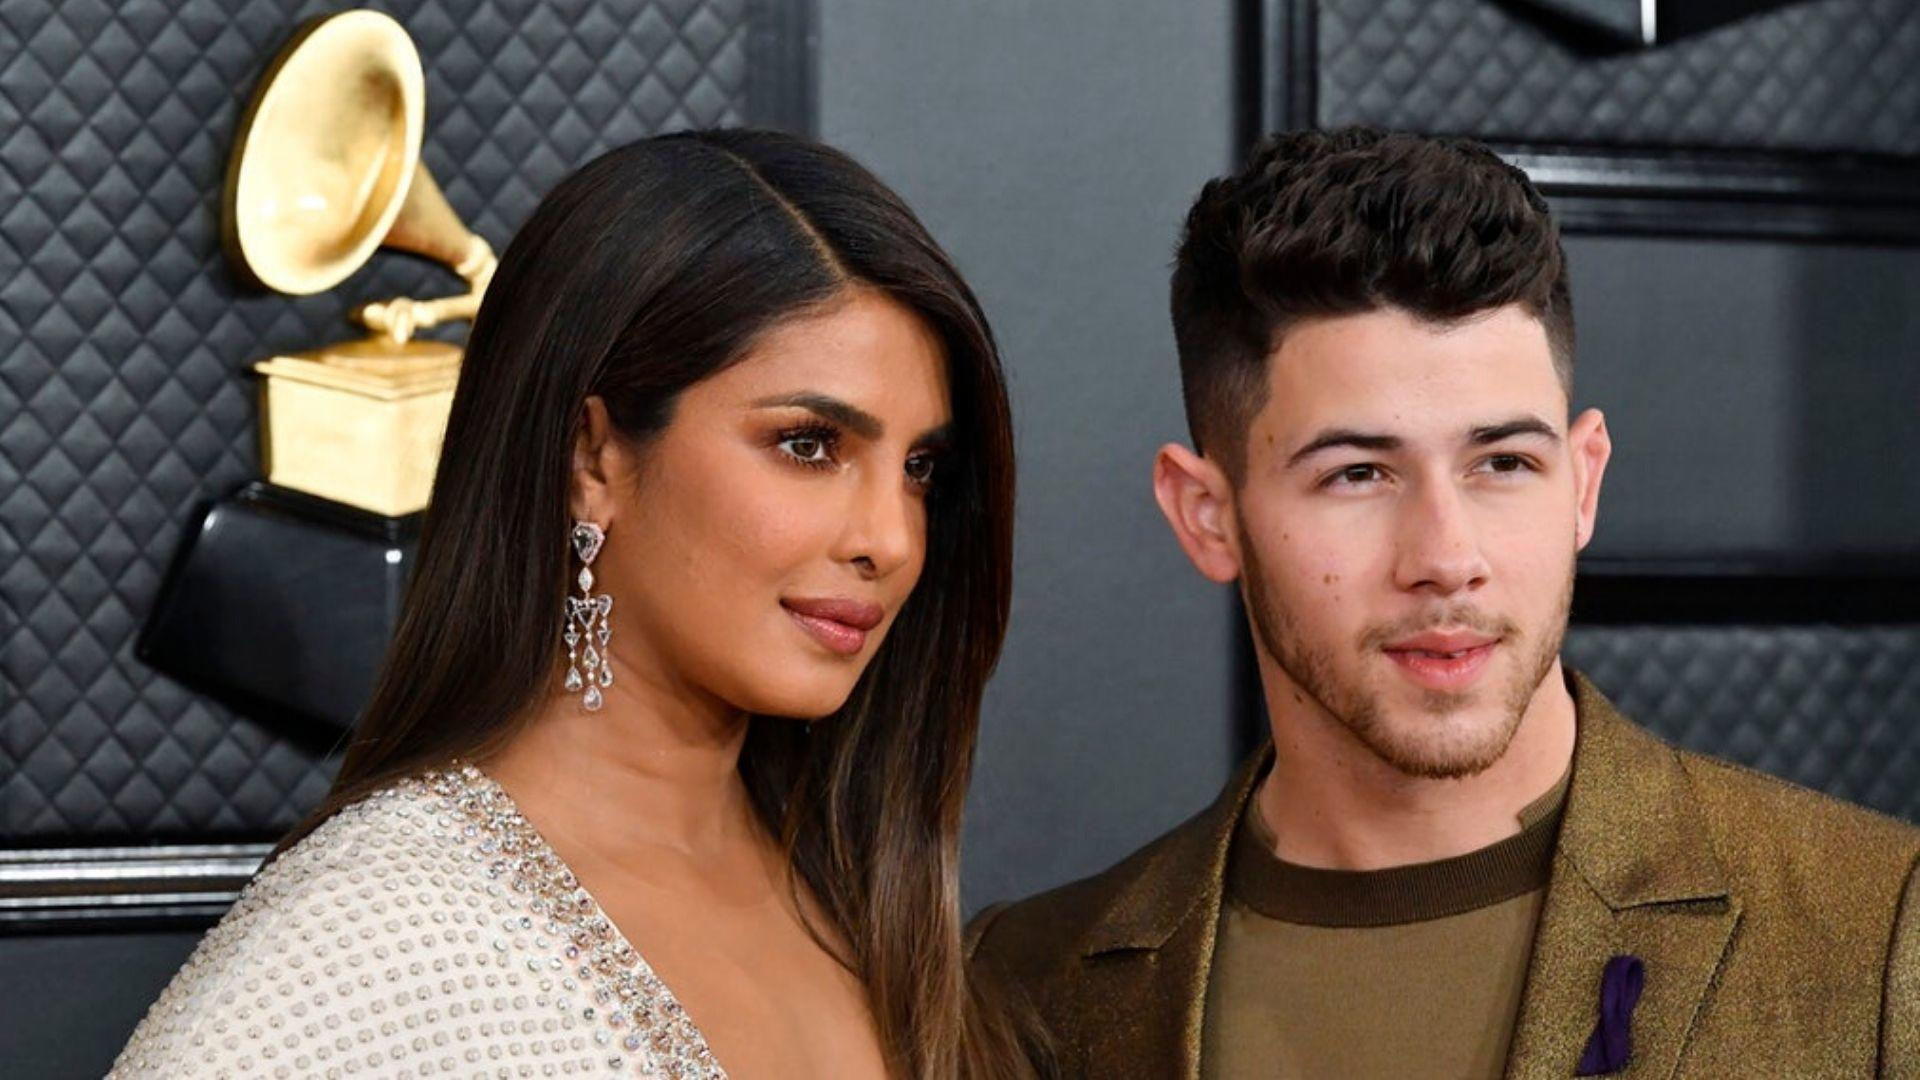 Priyanka Chopra Paid Tribute To Kobe Bryant On The 2020 Grammy Awards Red Carpet In The Sweetest Way